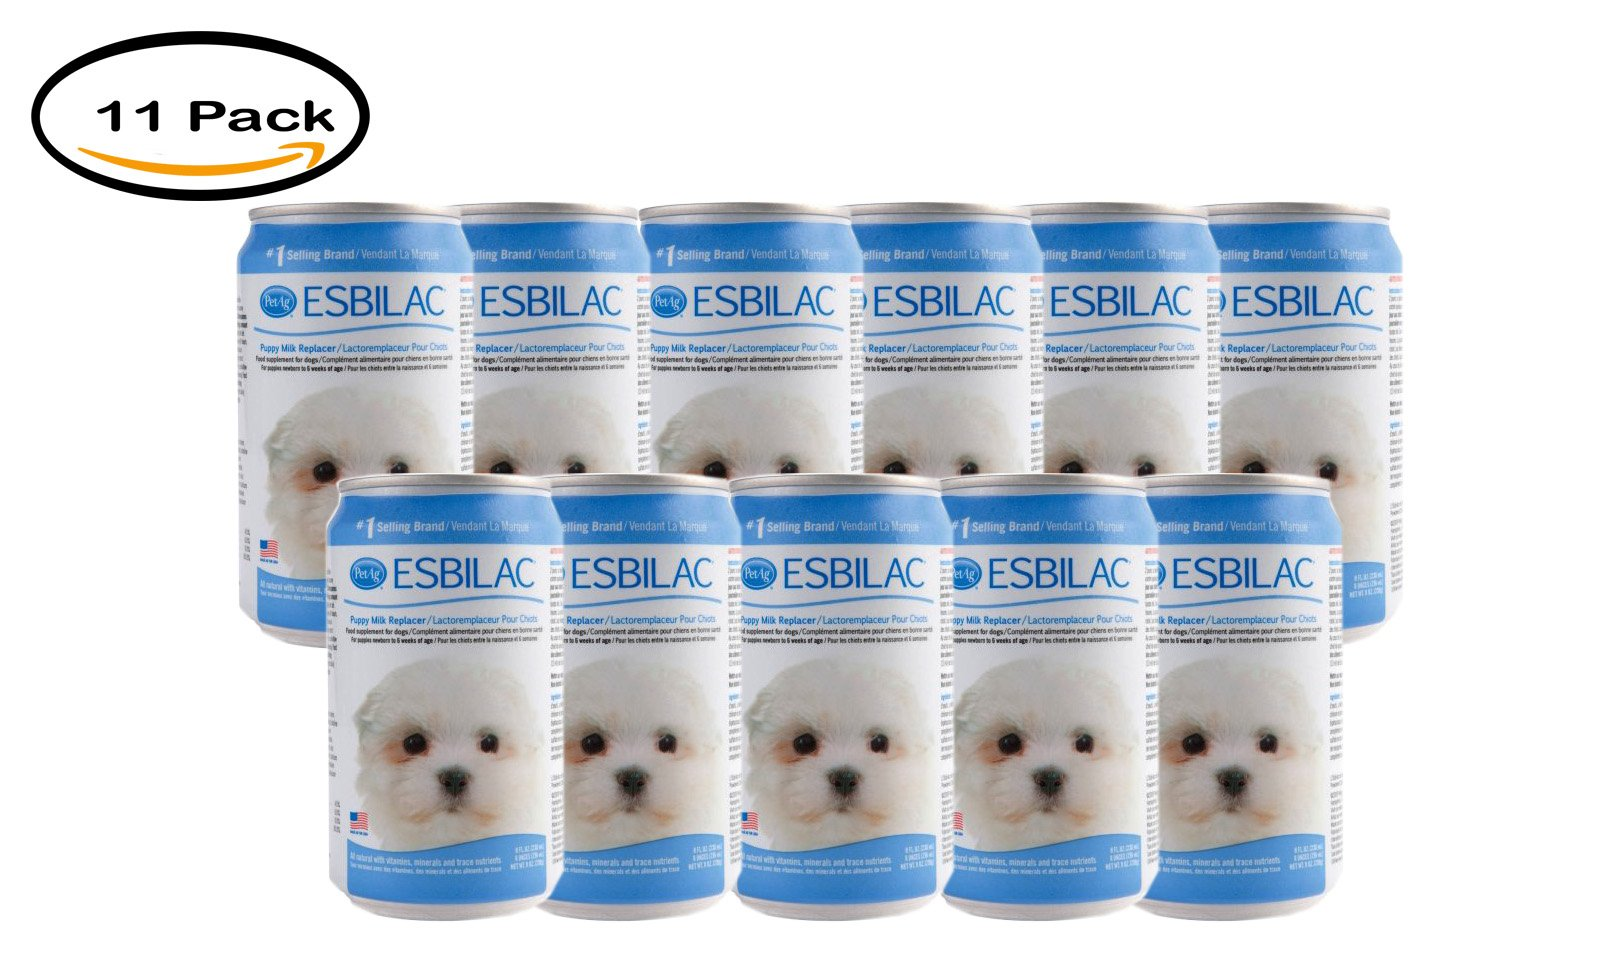 PACK OF 11- Esbilac Puppy Complete Liquid Diet, 8 oz